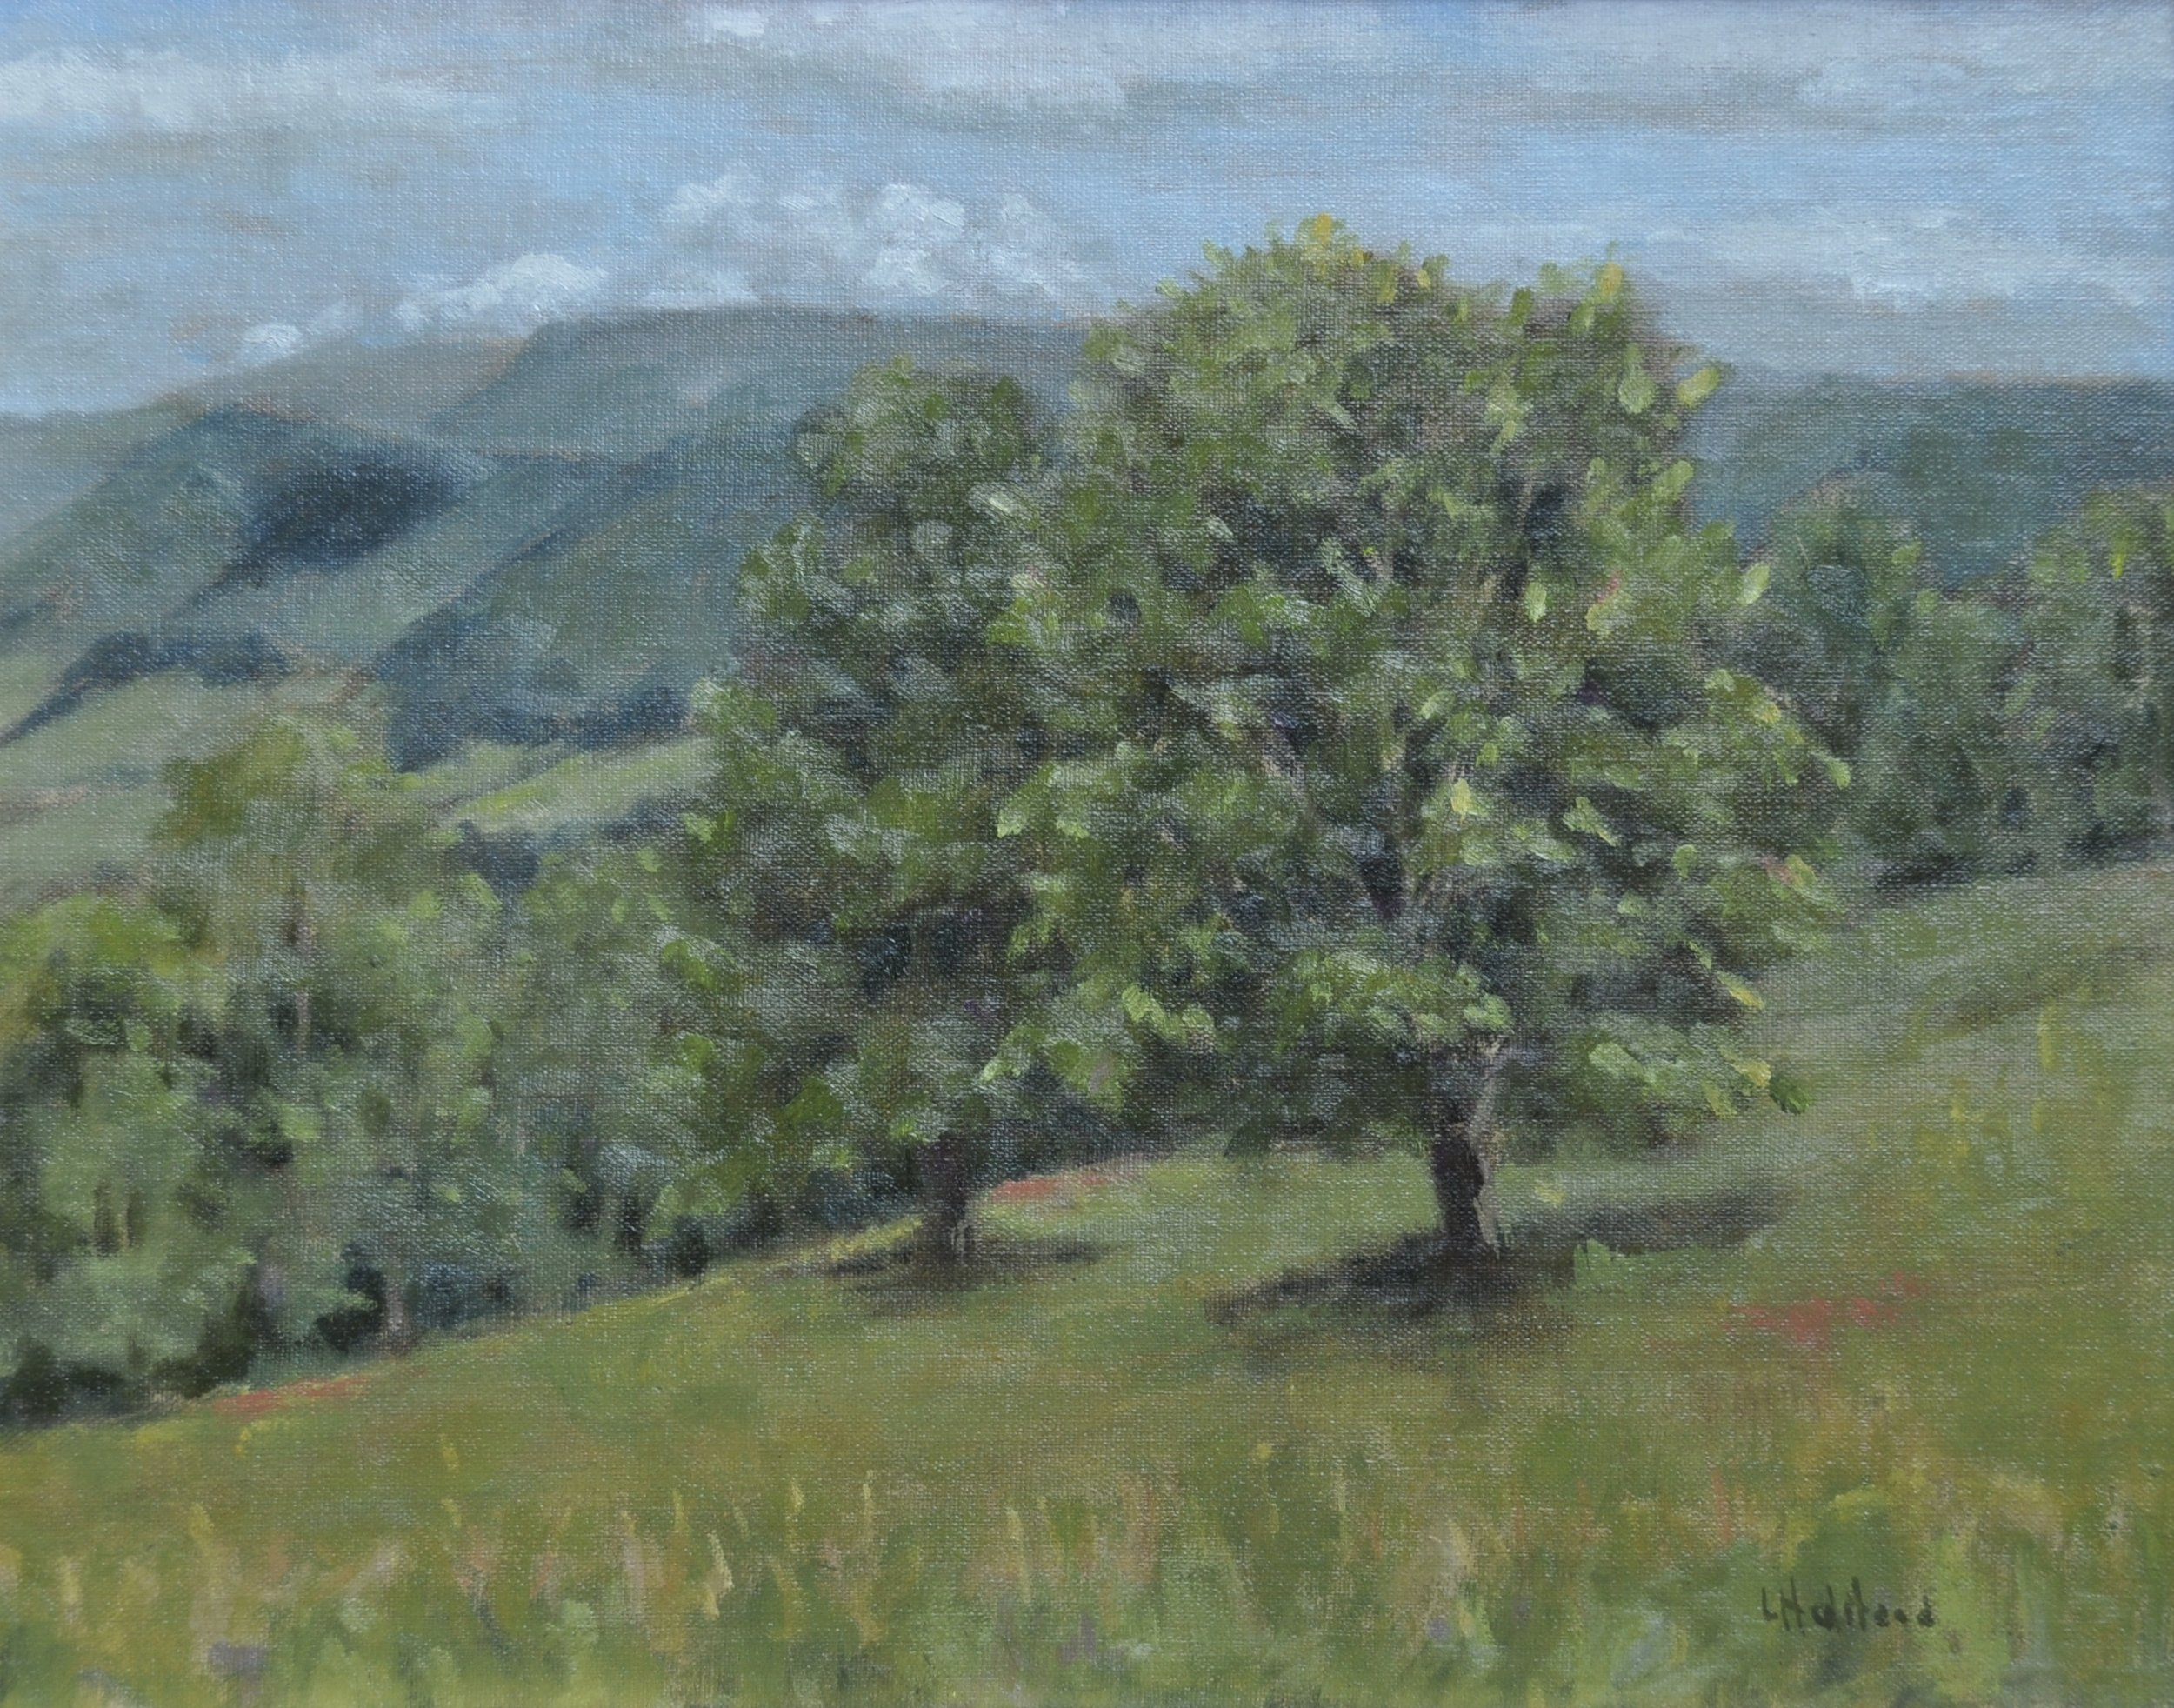 Two Maples, Oil on linen, 11 x 14, available